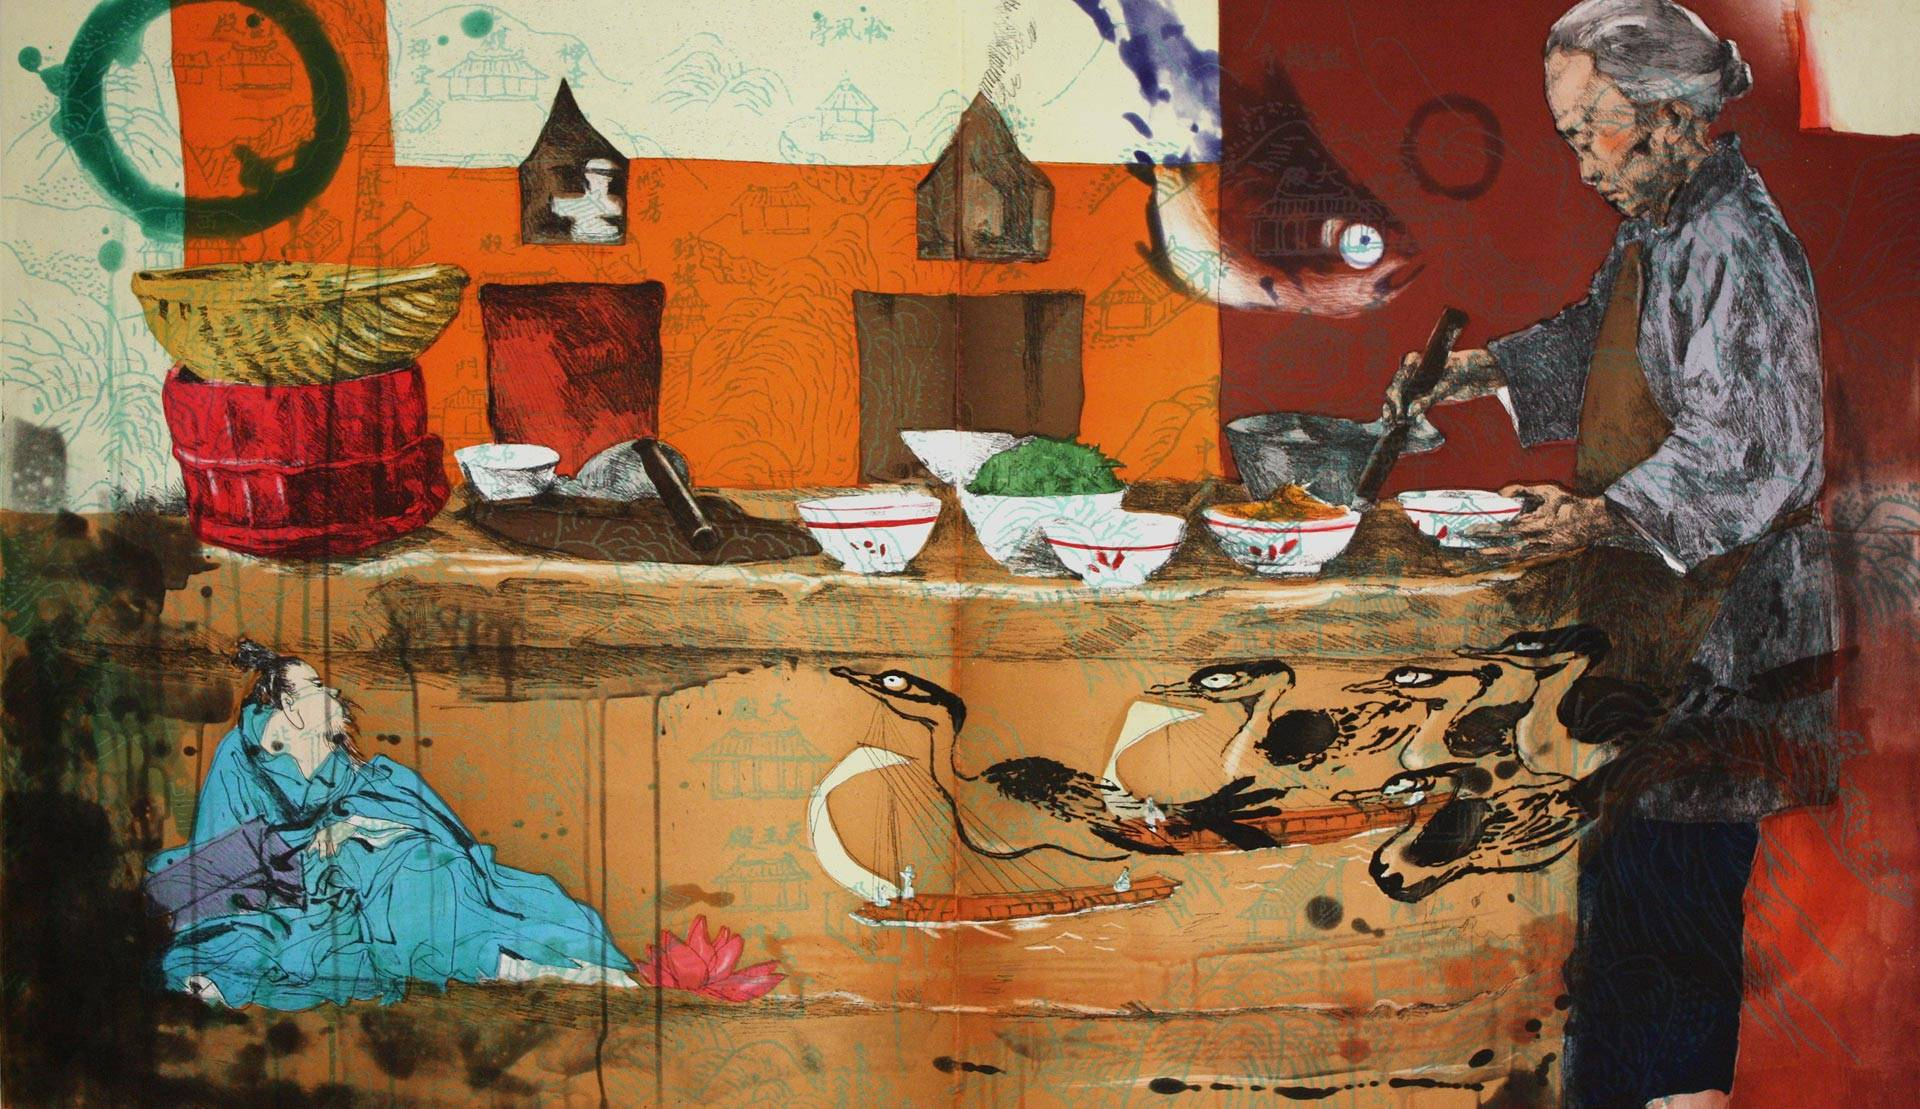 'Luzao (Stove)' (2008), by Hung Liu. It's one of the paintings that speak to the dignity of labor in 'We Who Work' at the Santa Cruz Museum of Art and History.